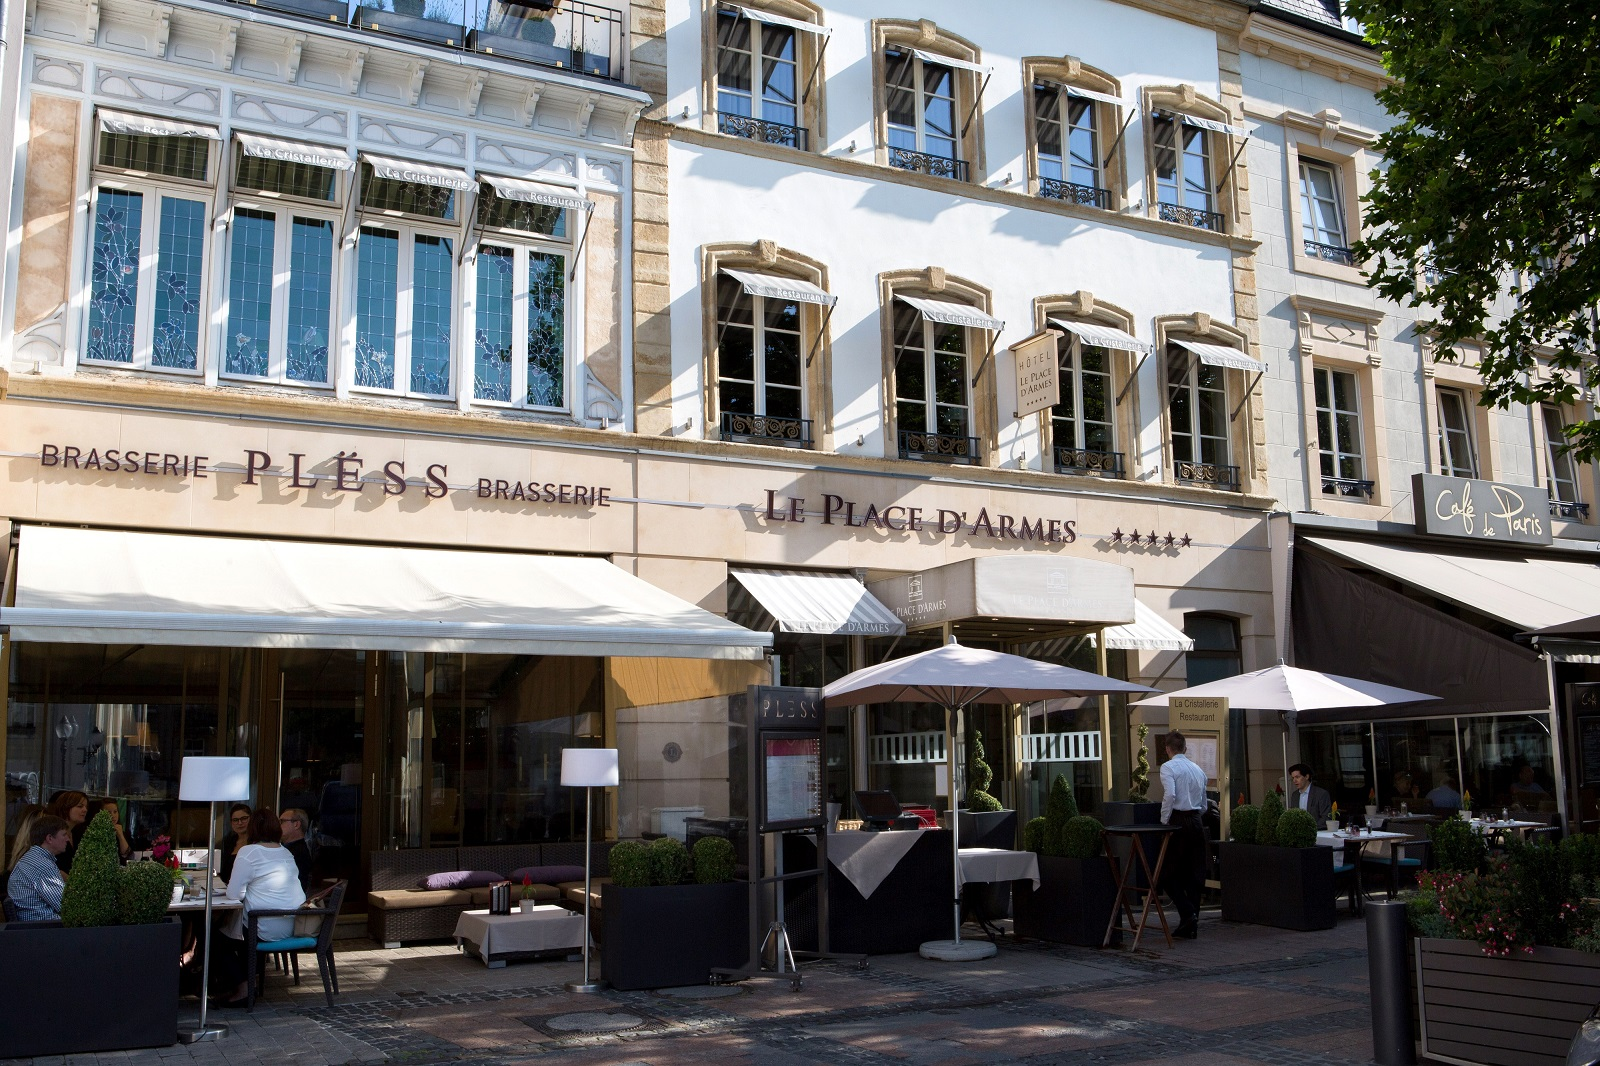 Le place d 39 armes ultra luxury and luxury hotels and for Gourmet hotels